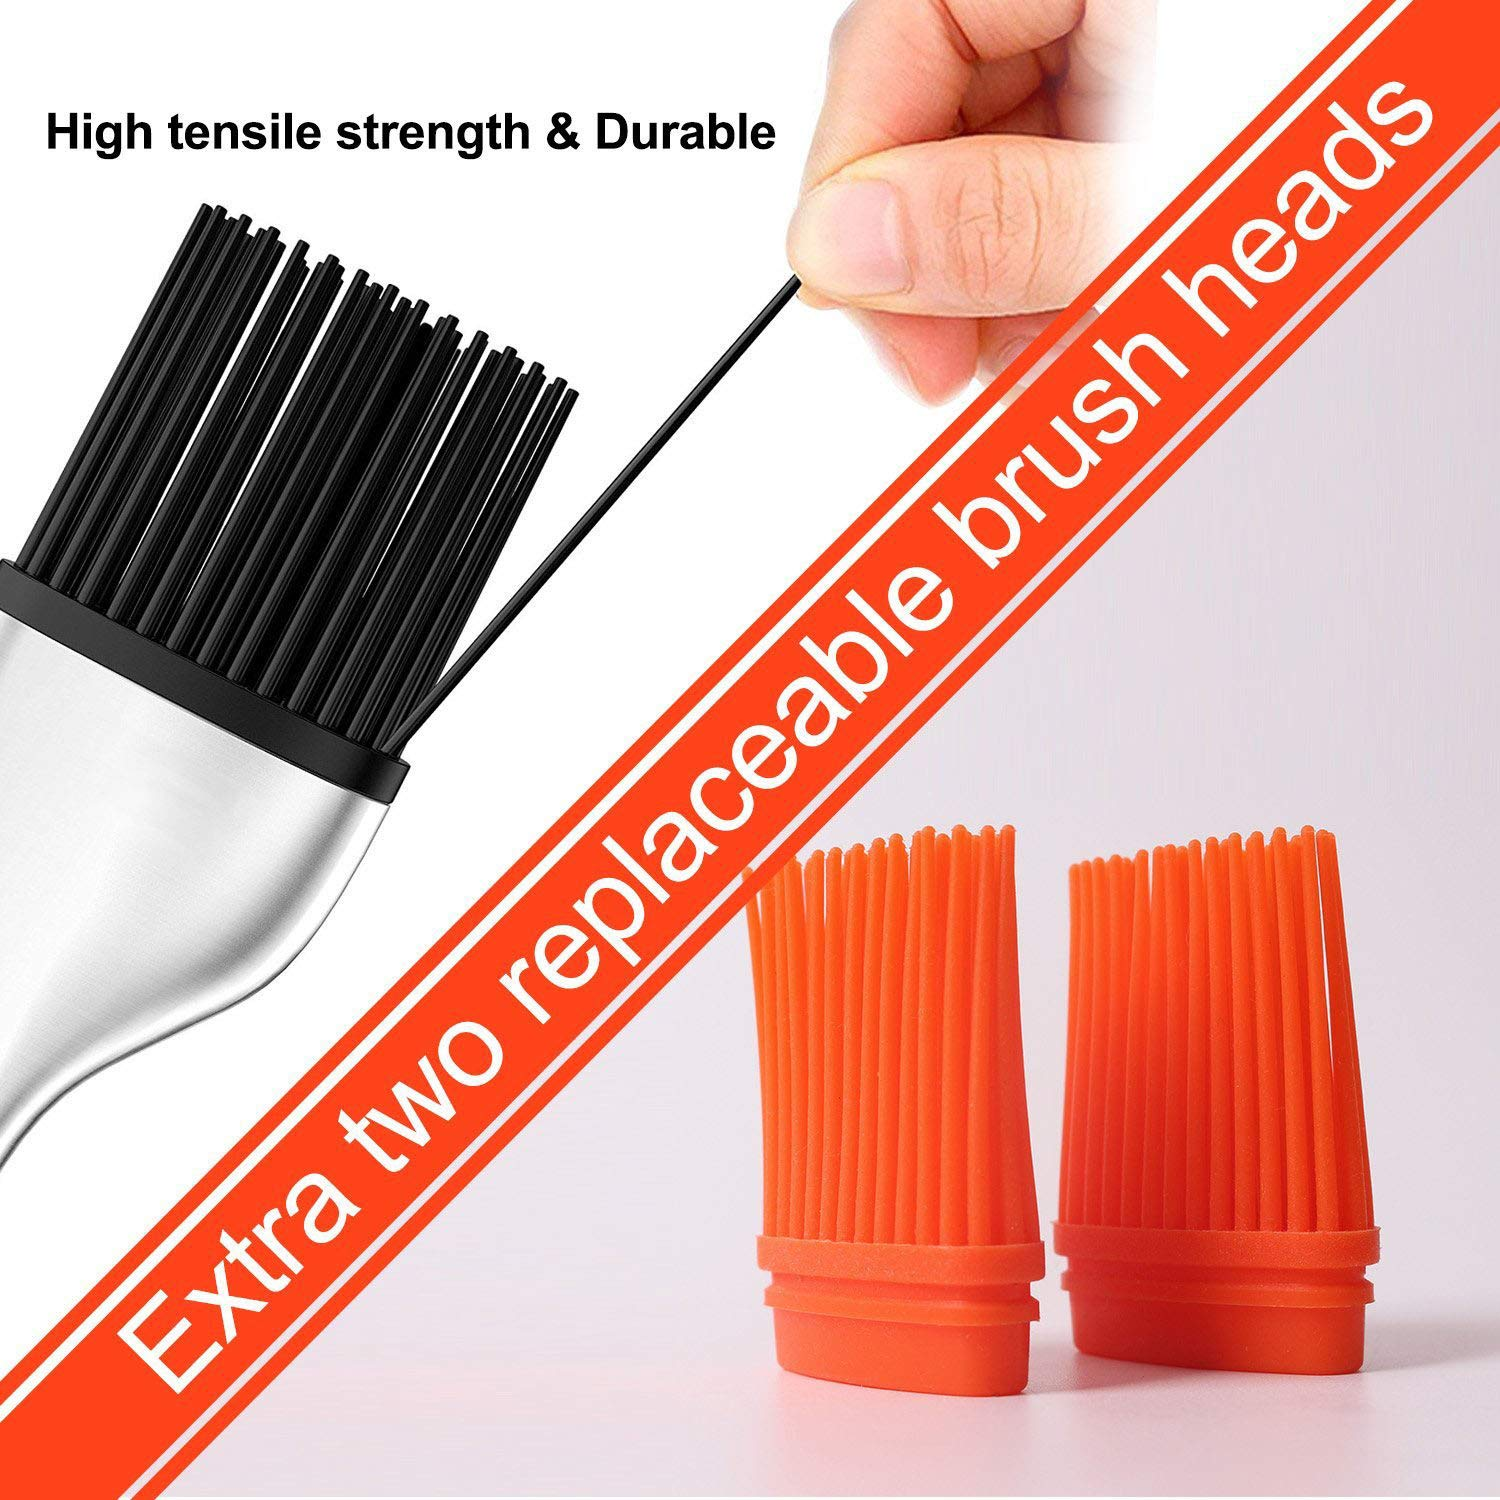 Pastry Brush Great for BBQ Meat Grill ONWON Set of 2 Silicone Basting Brush with Extra 2 Replaceable Bruch Heads Cakes and Pastries BBQ Brush